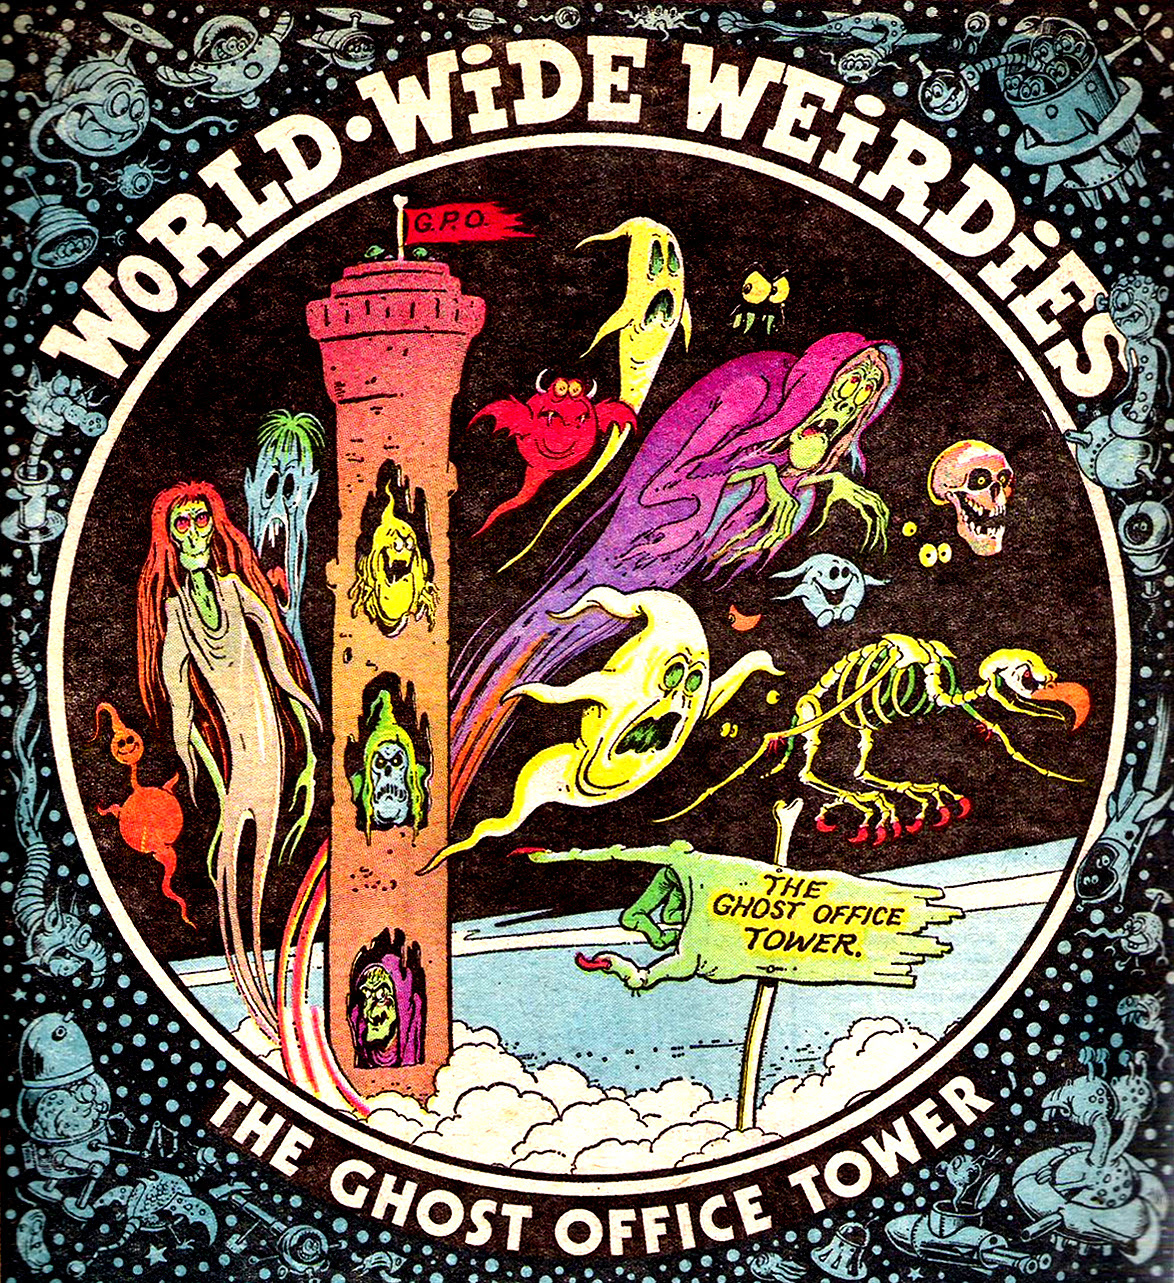 Ken Reid - World Wide Weirdies 13